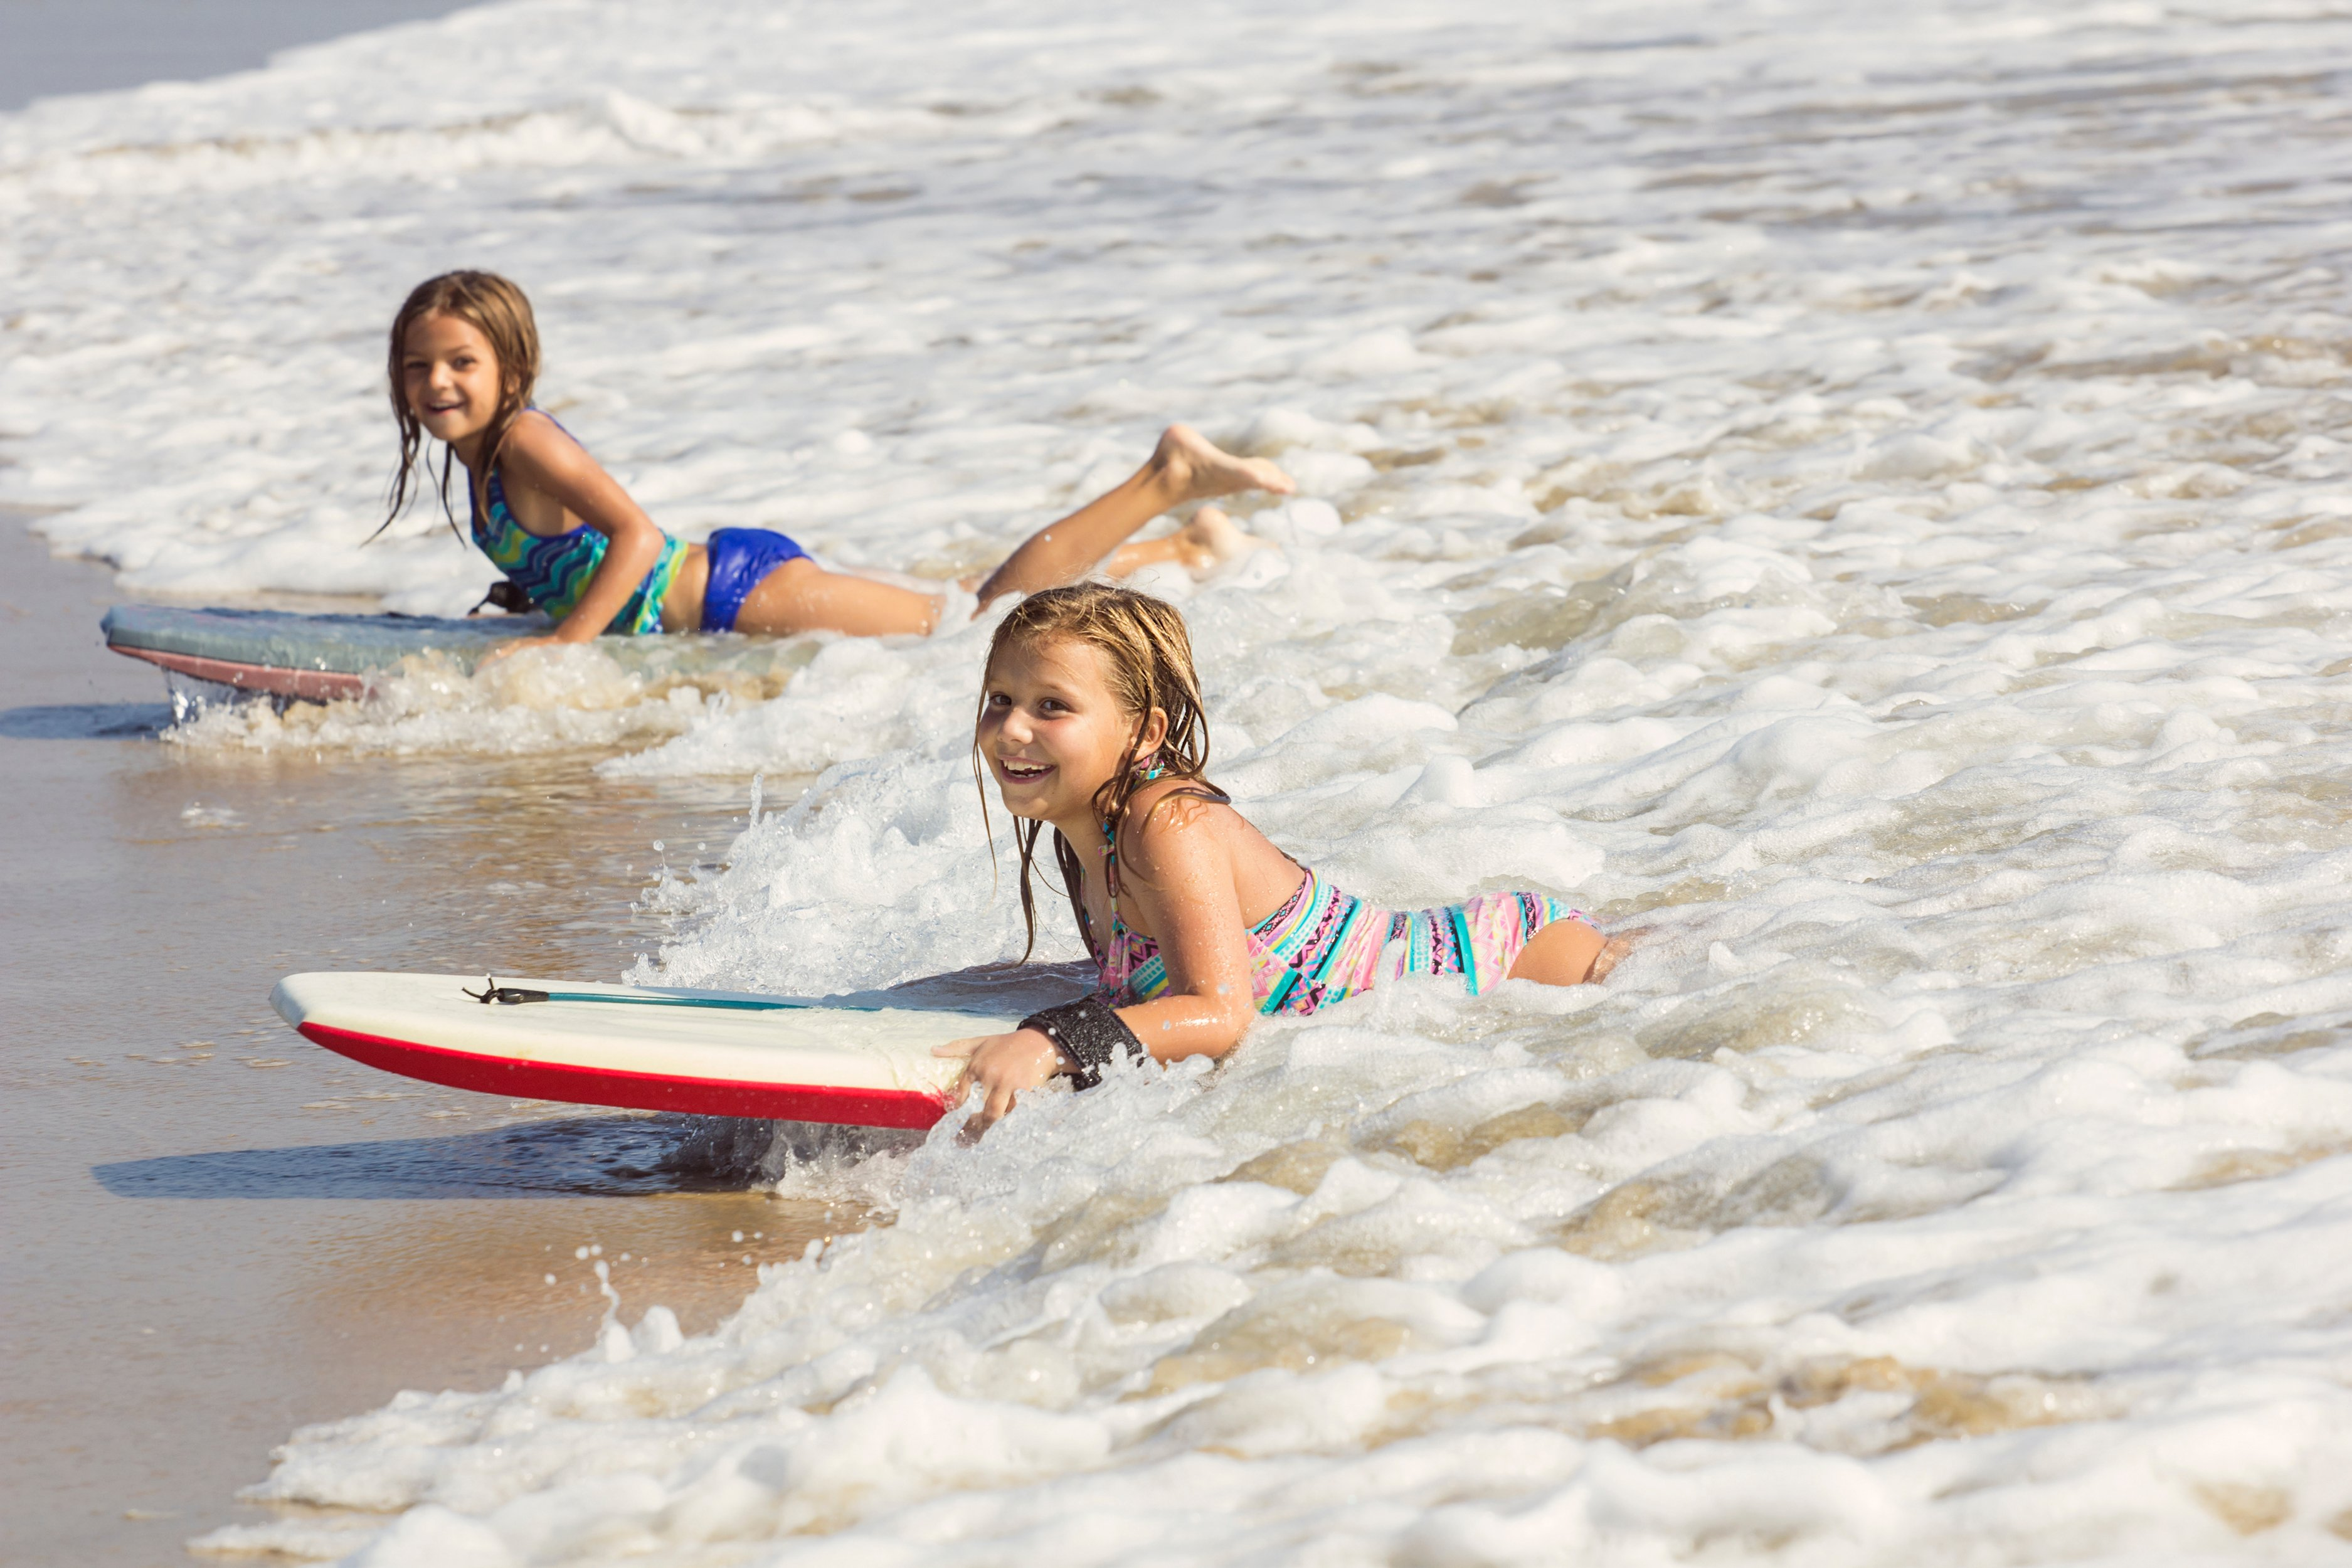 Two girls ride boogie boards into shore on a California beach.